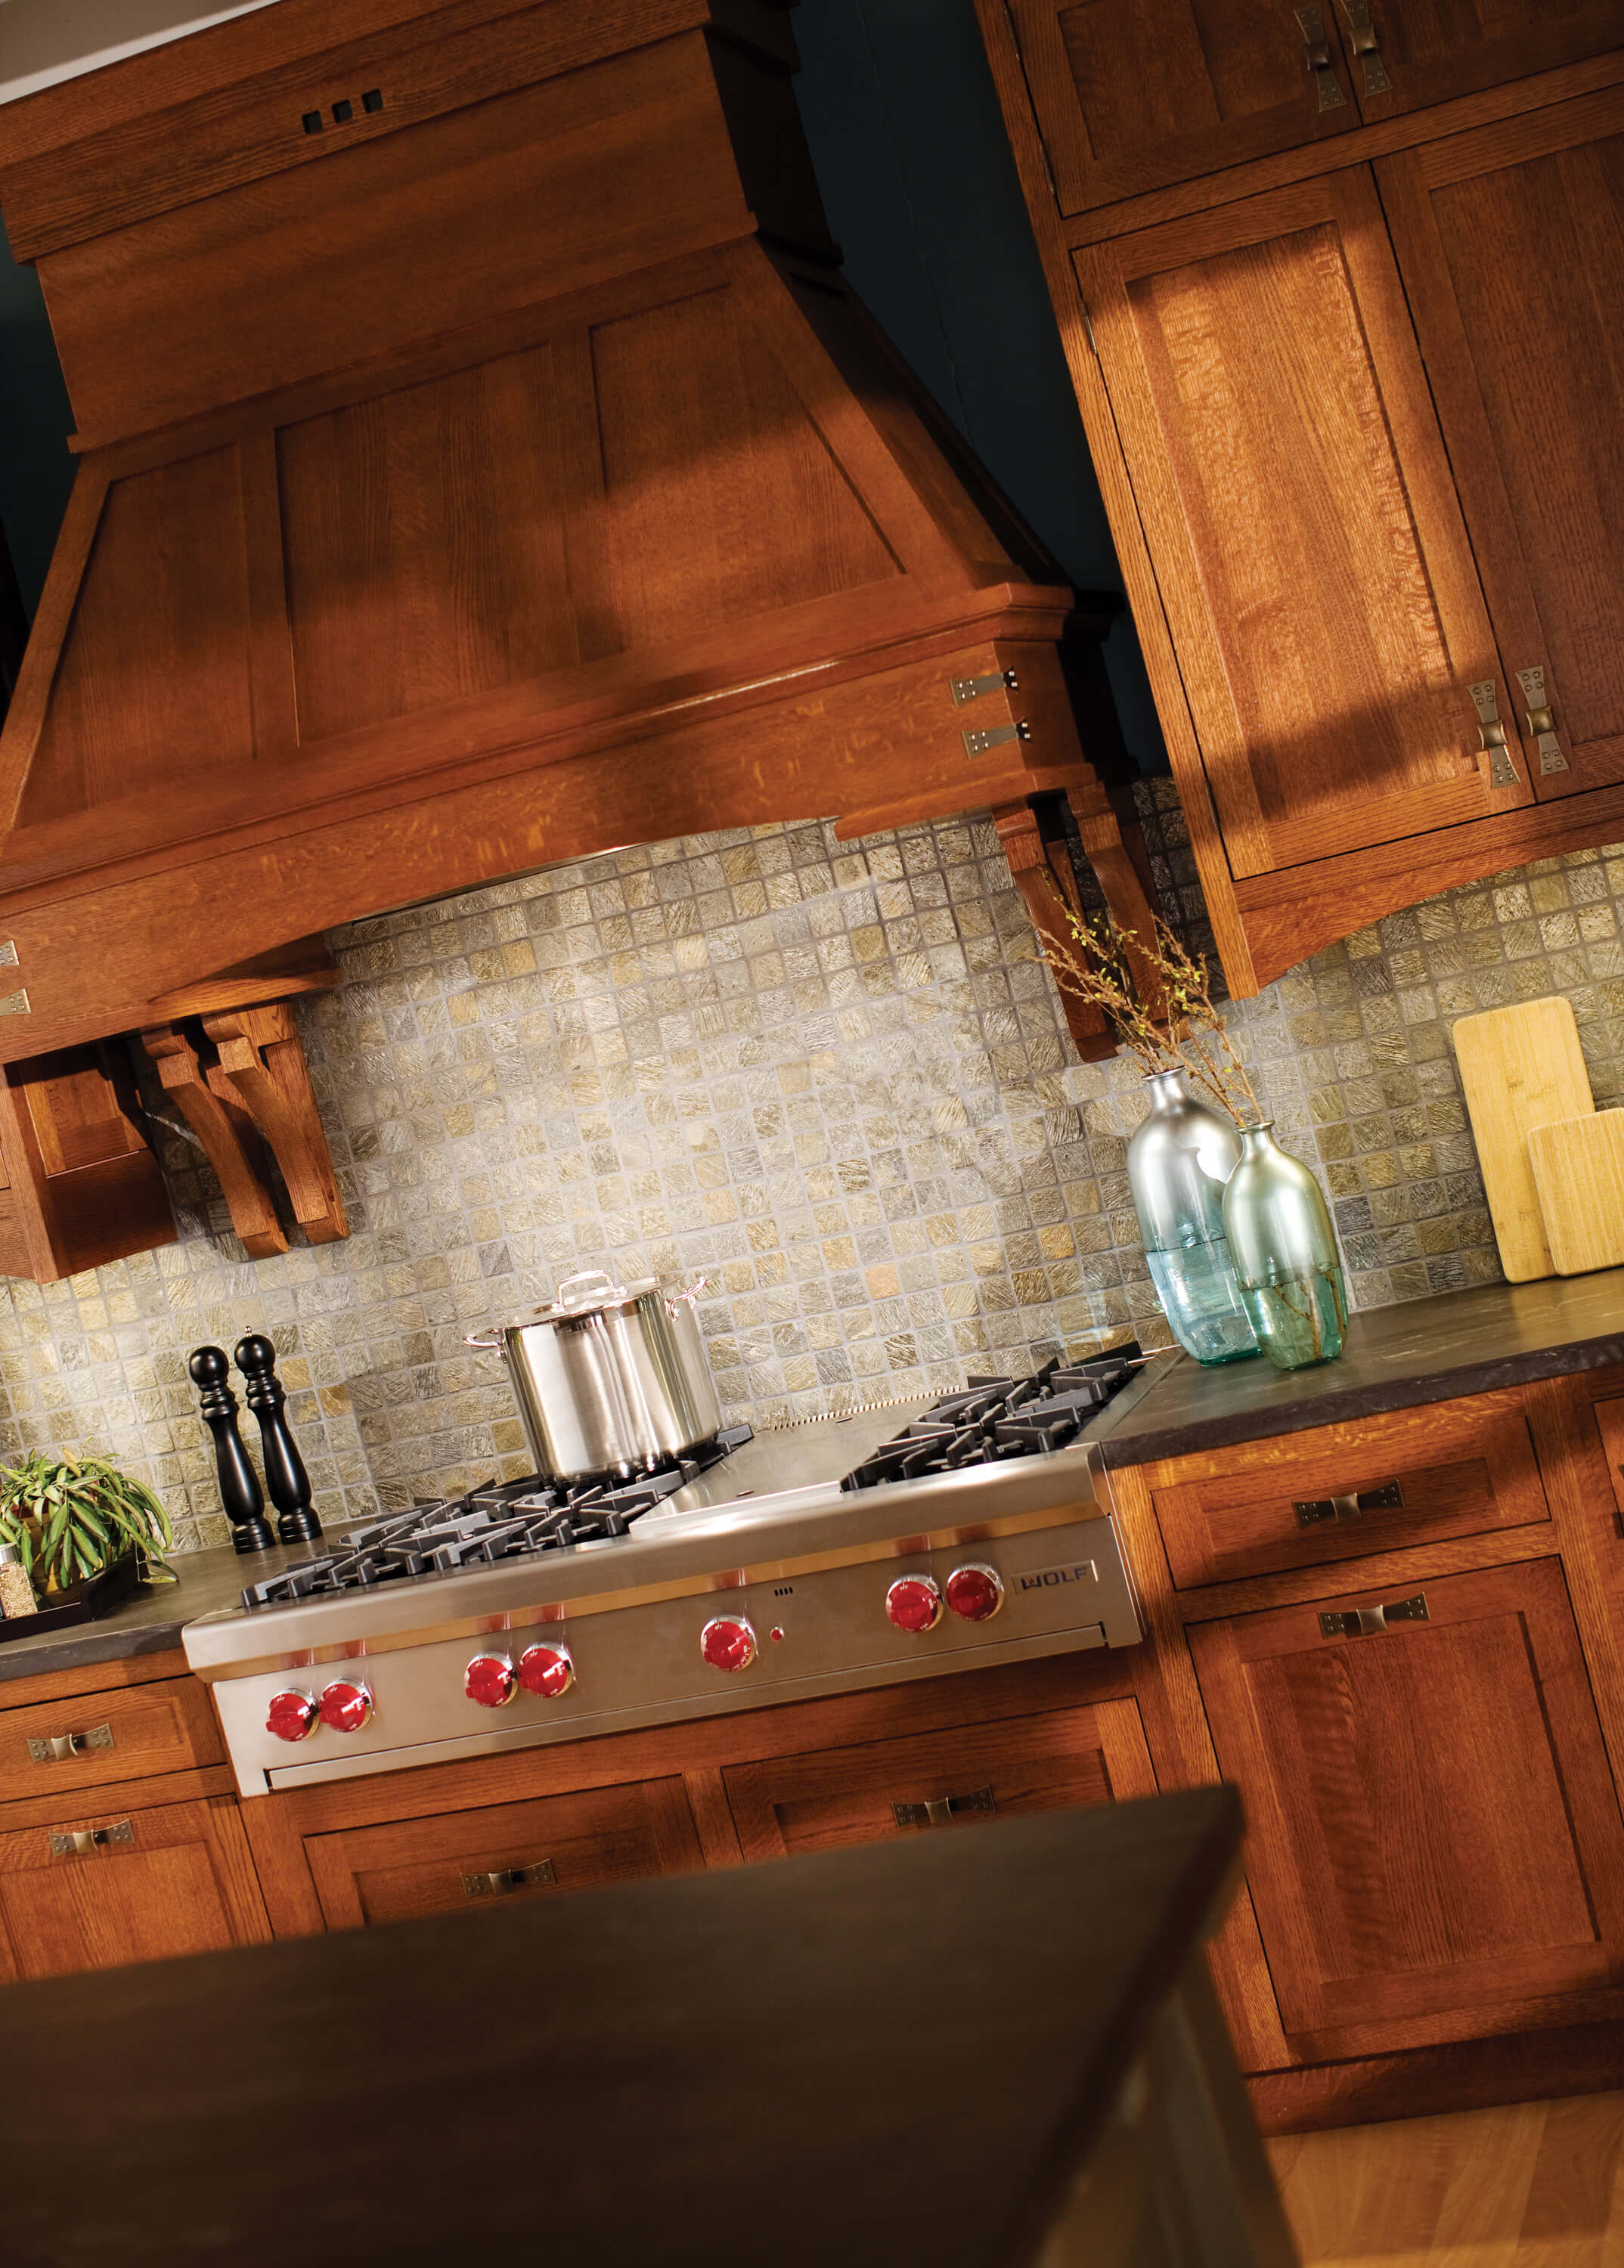 Wood hoods add a true hand-crafted focal point to a Craftsman style kitchen design.